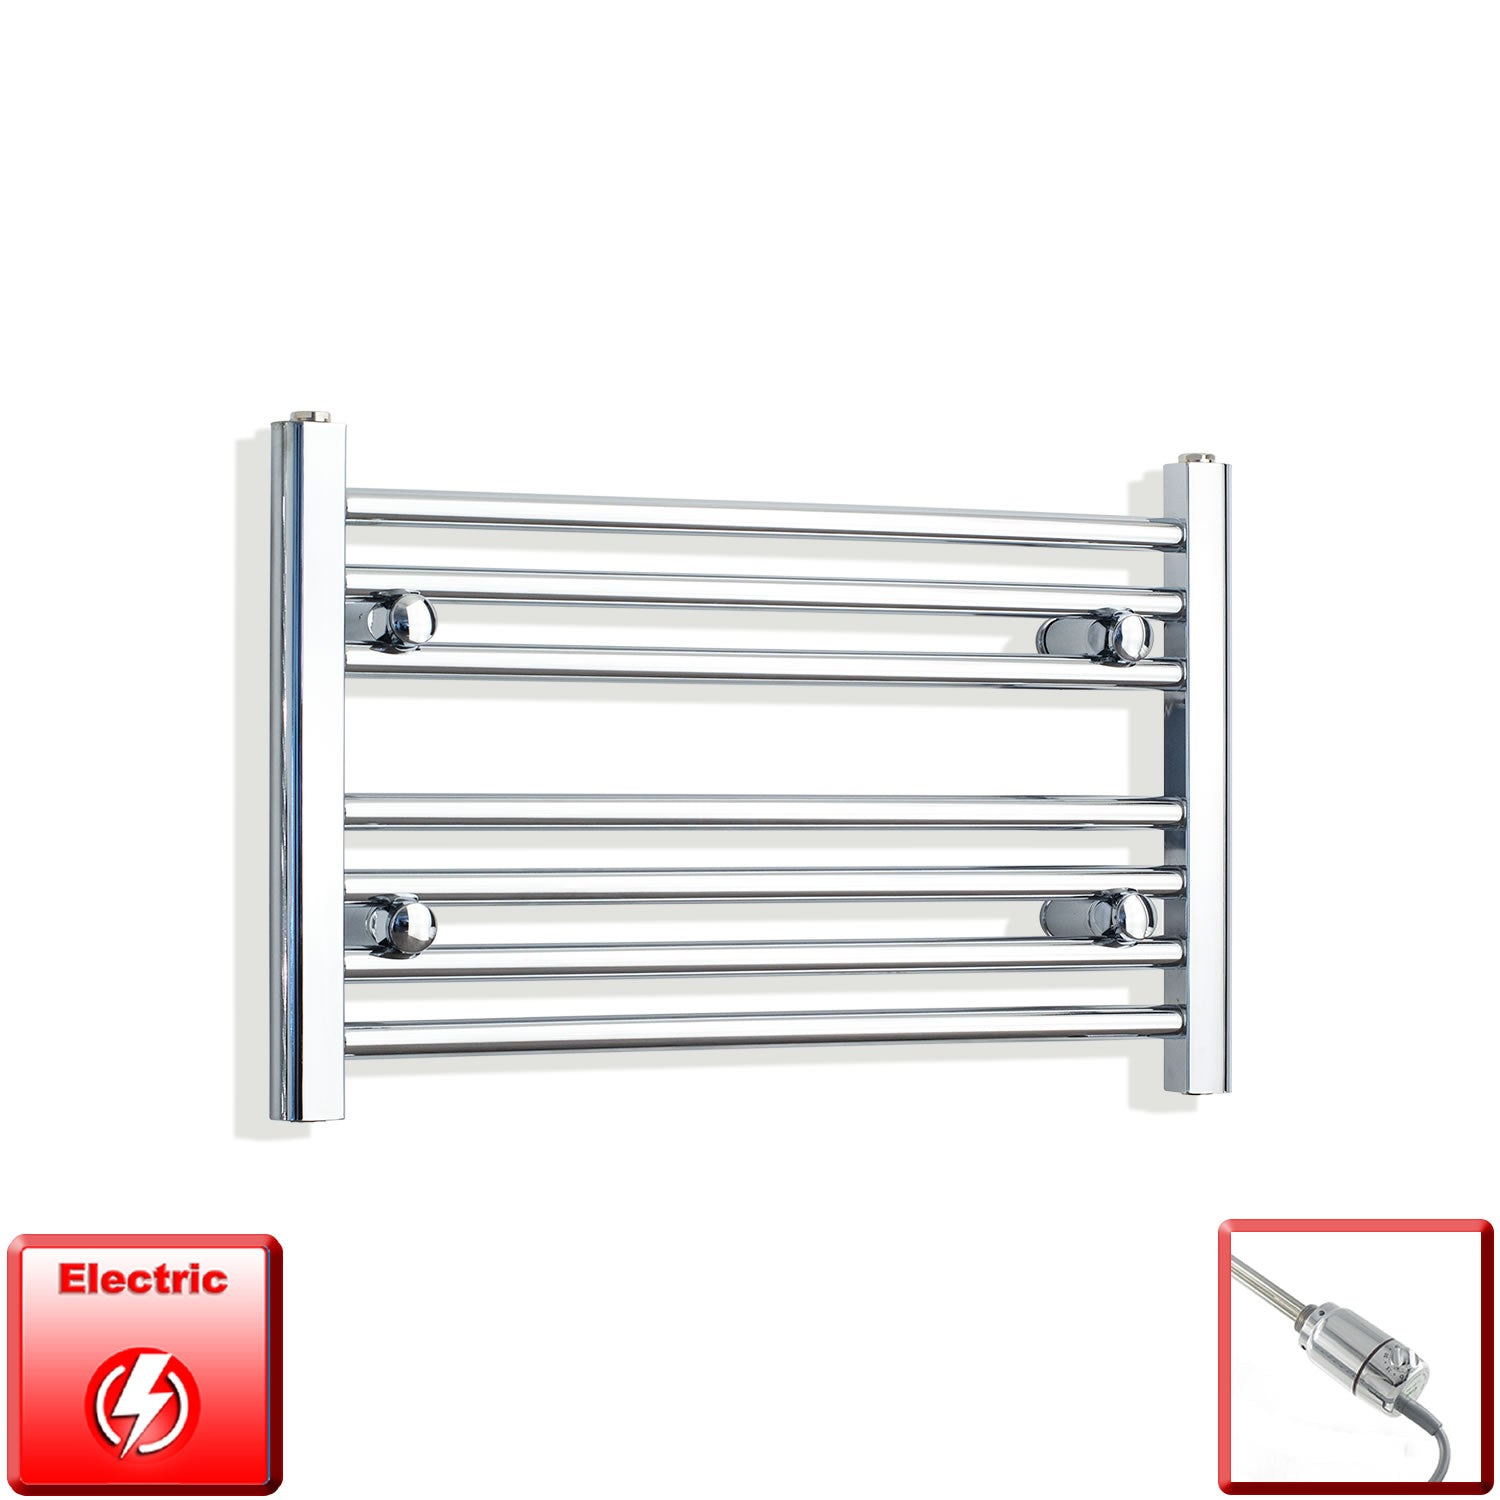 850mm Wide 400mm High Flat Chrome Pre-Filled Electric Heated Towel Rail Radiator HTR,GT Thermostatic